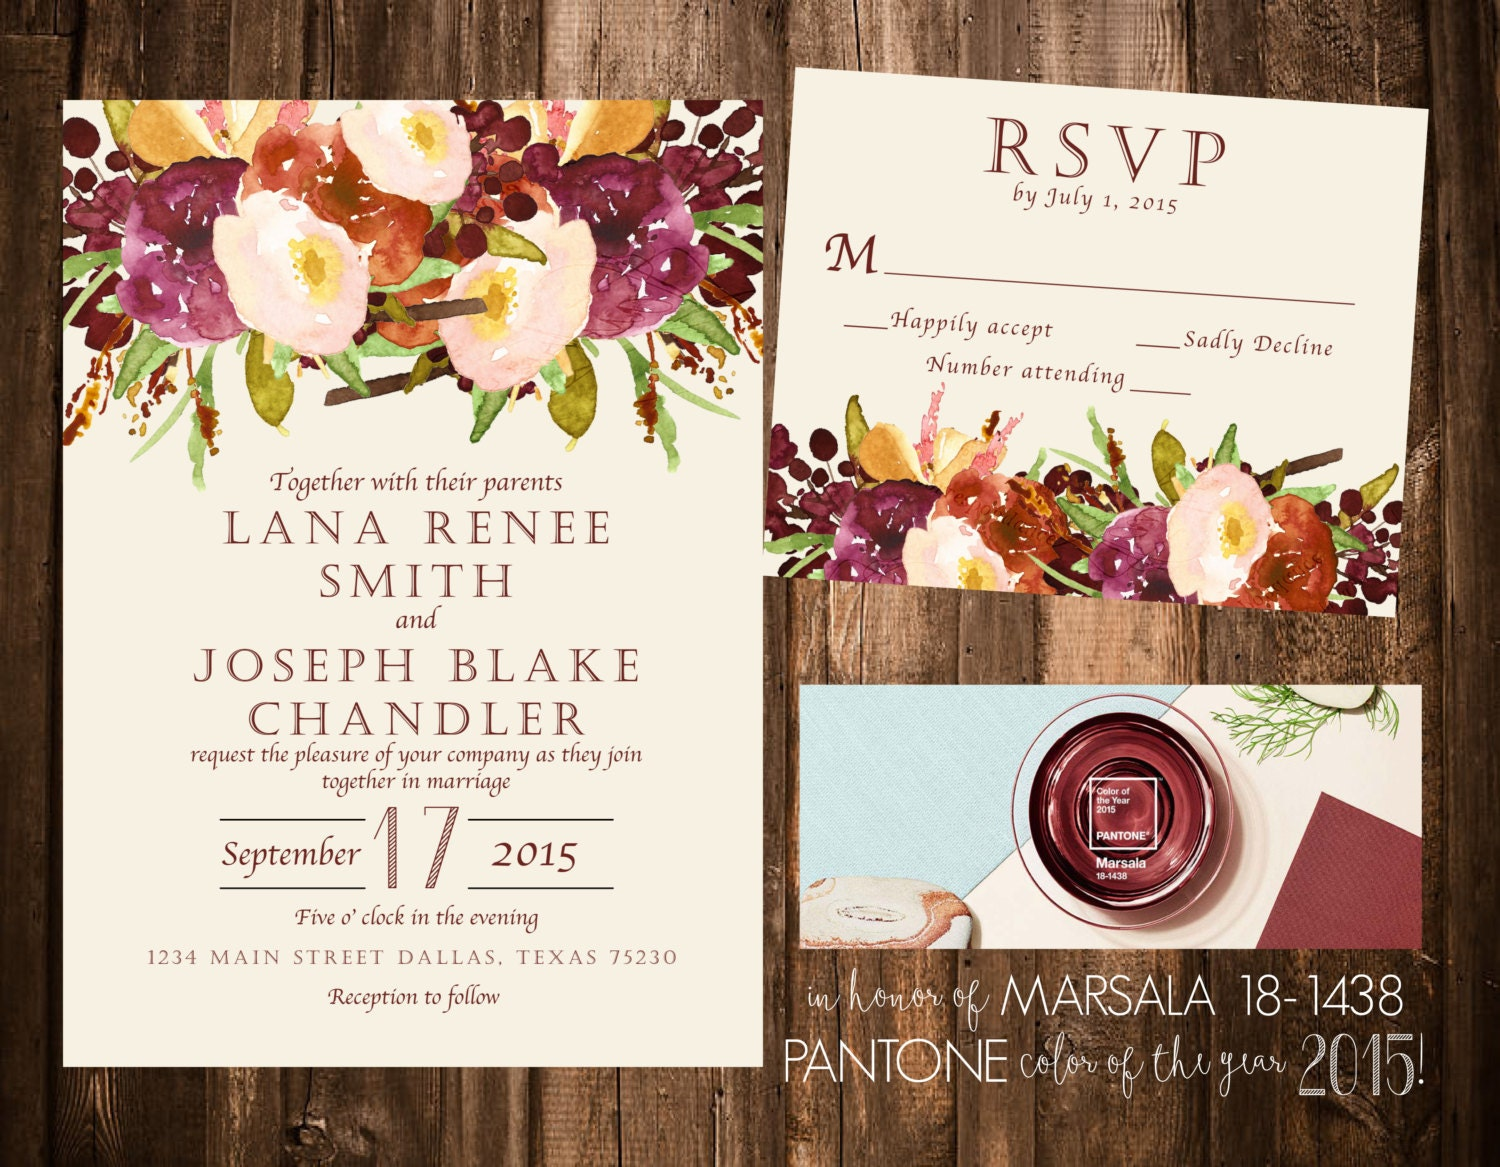 Printable Wedding Invitation Sets: Marsala Floral Wedding Invitation Set Printable OR Set Of 25